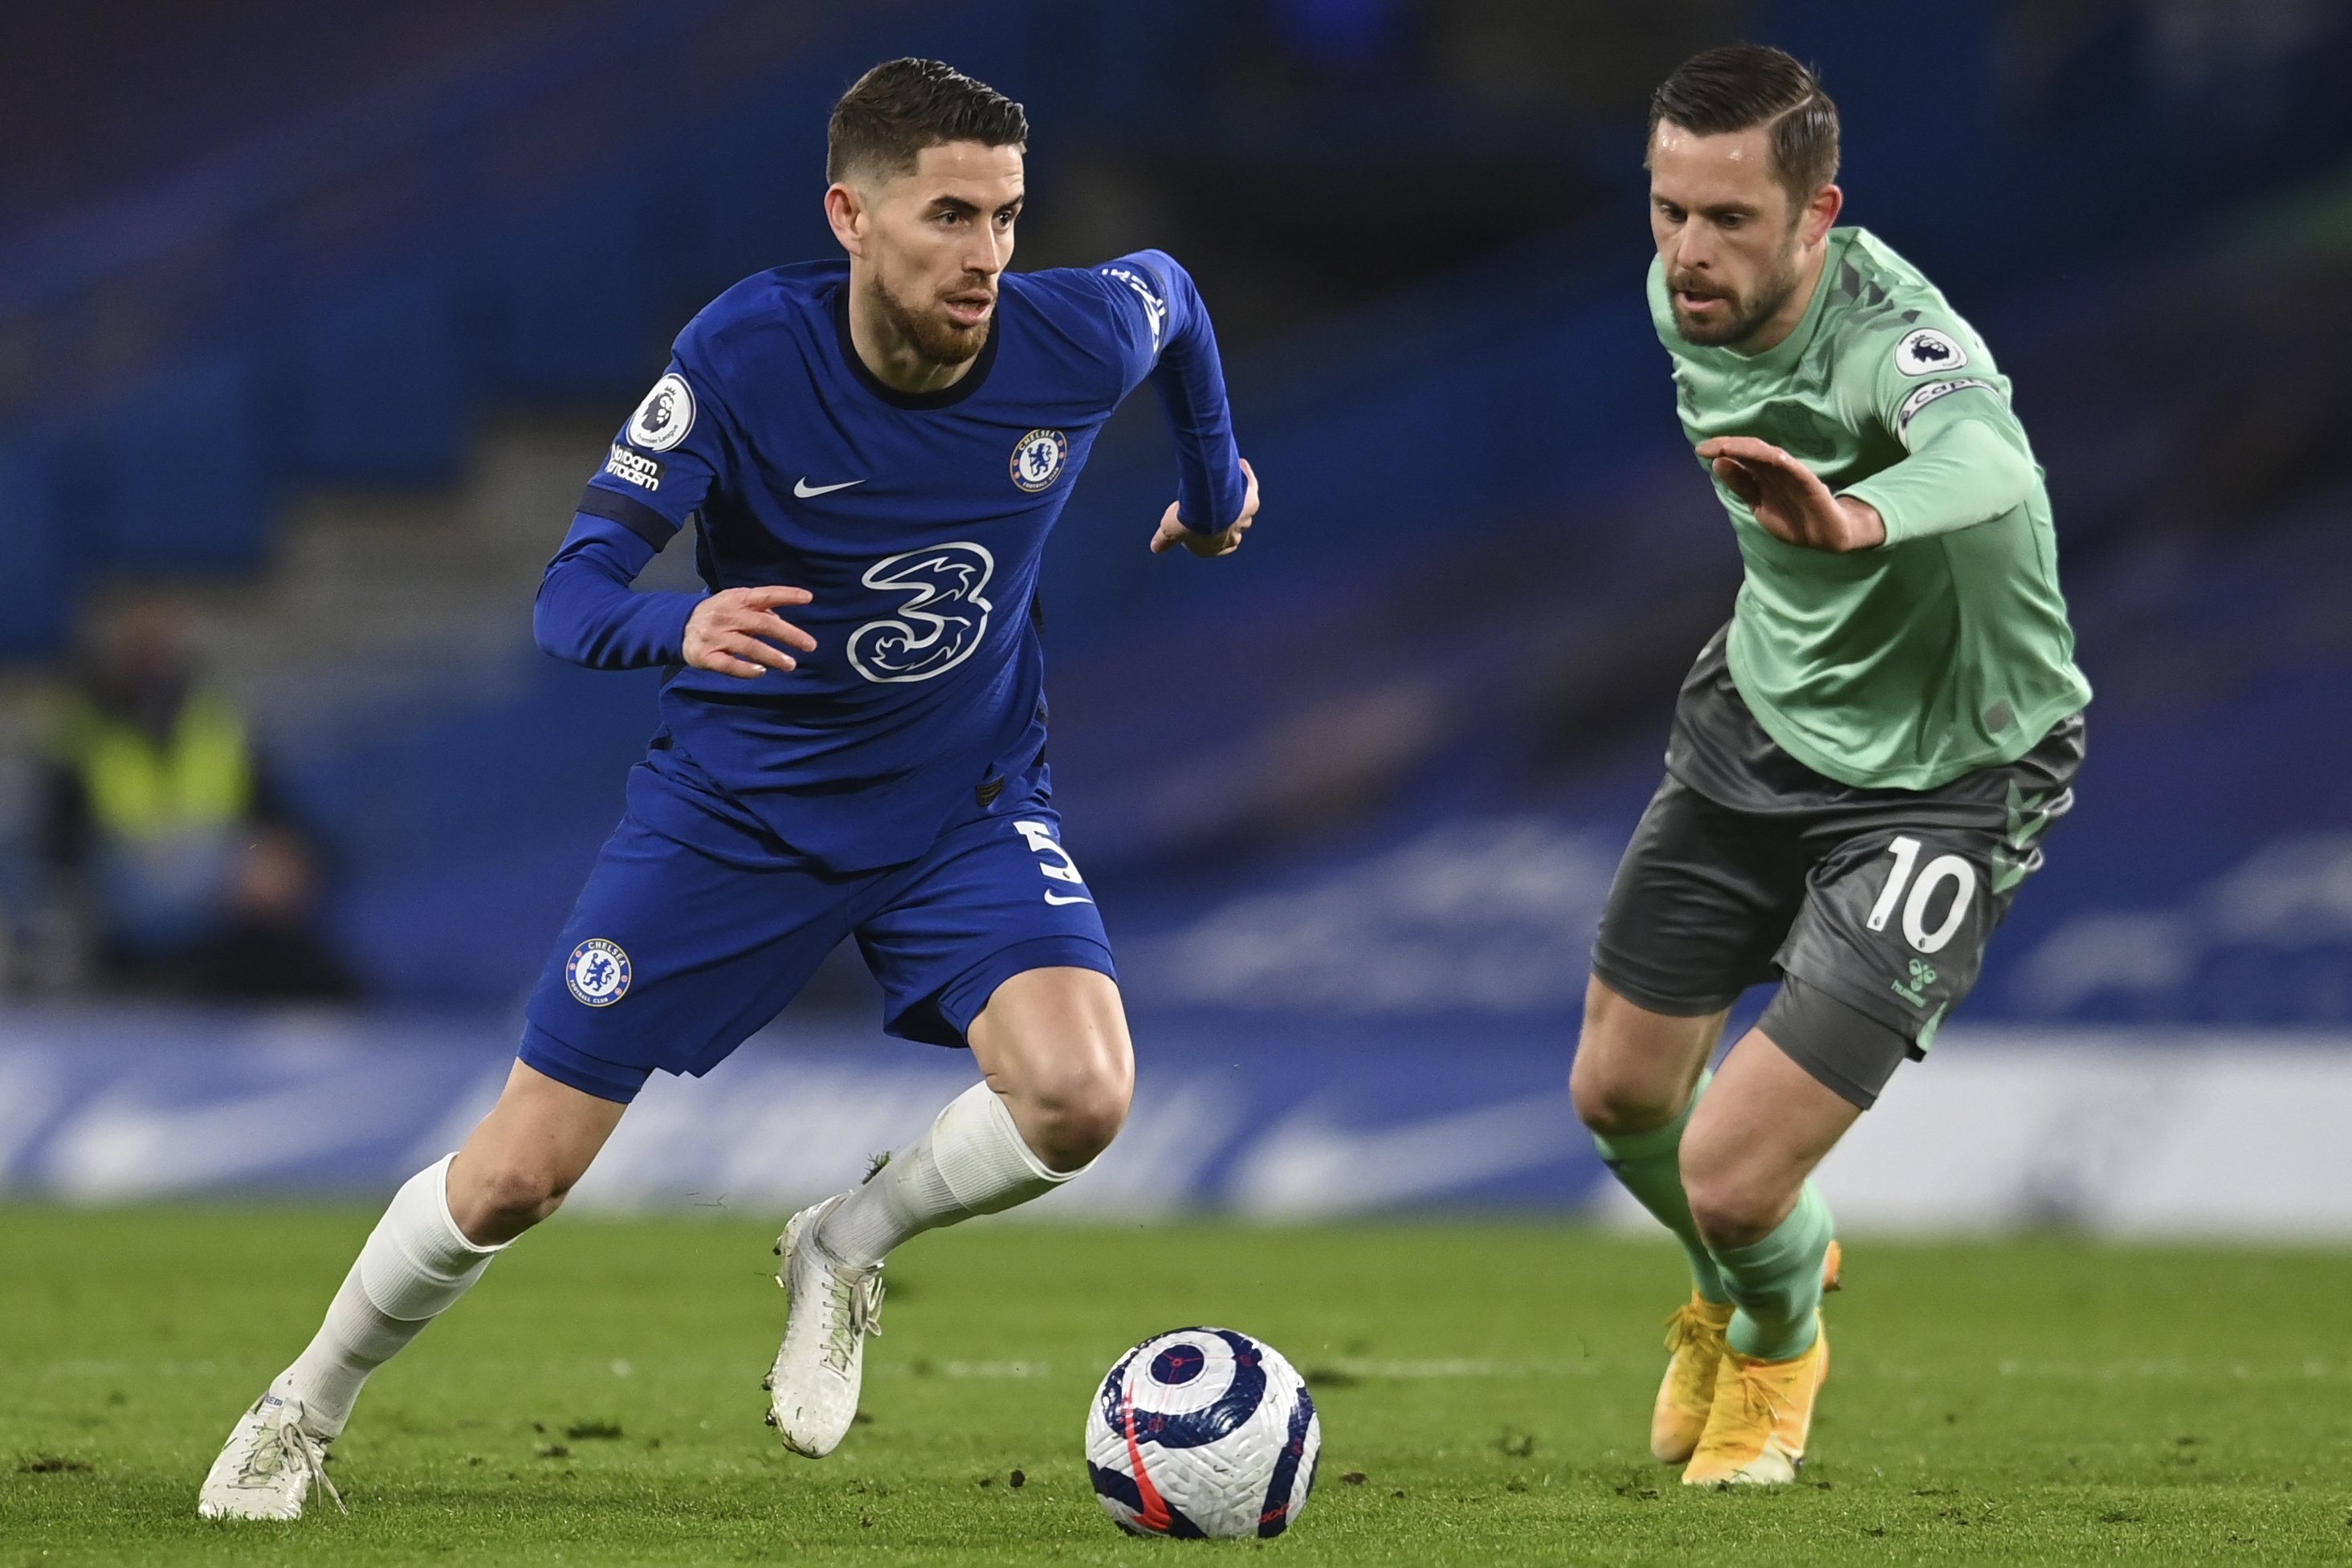 Chelsea's Jorginho (L) is challenged by Everton's Gylfi Sigurdsson during the English Premier League soccer match between Chelsea and Everton at the Stamford Bridge stadium in London, March 8, 2021. (AP Photo)